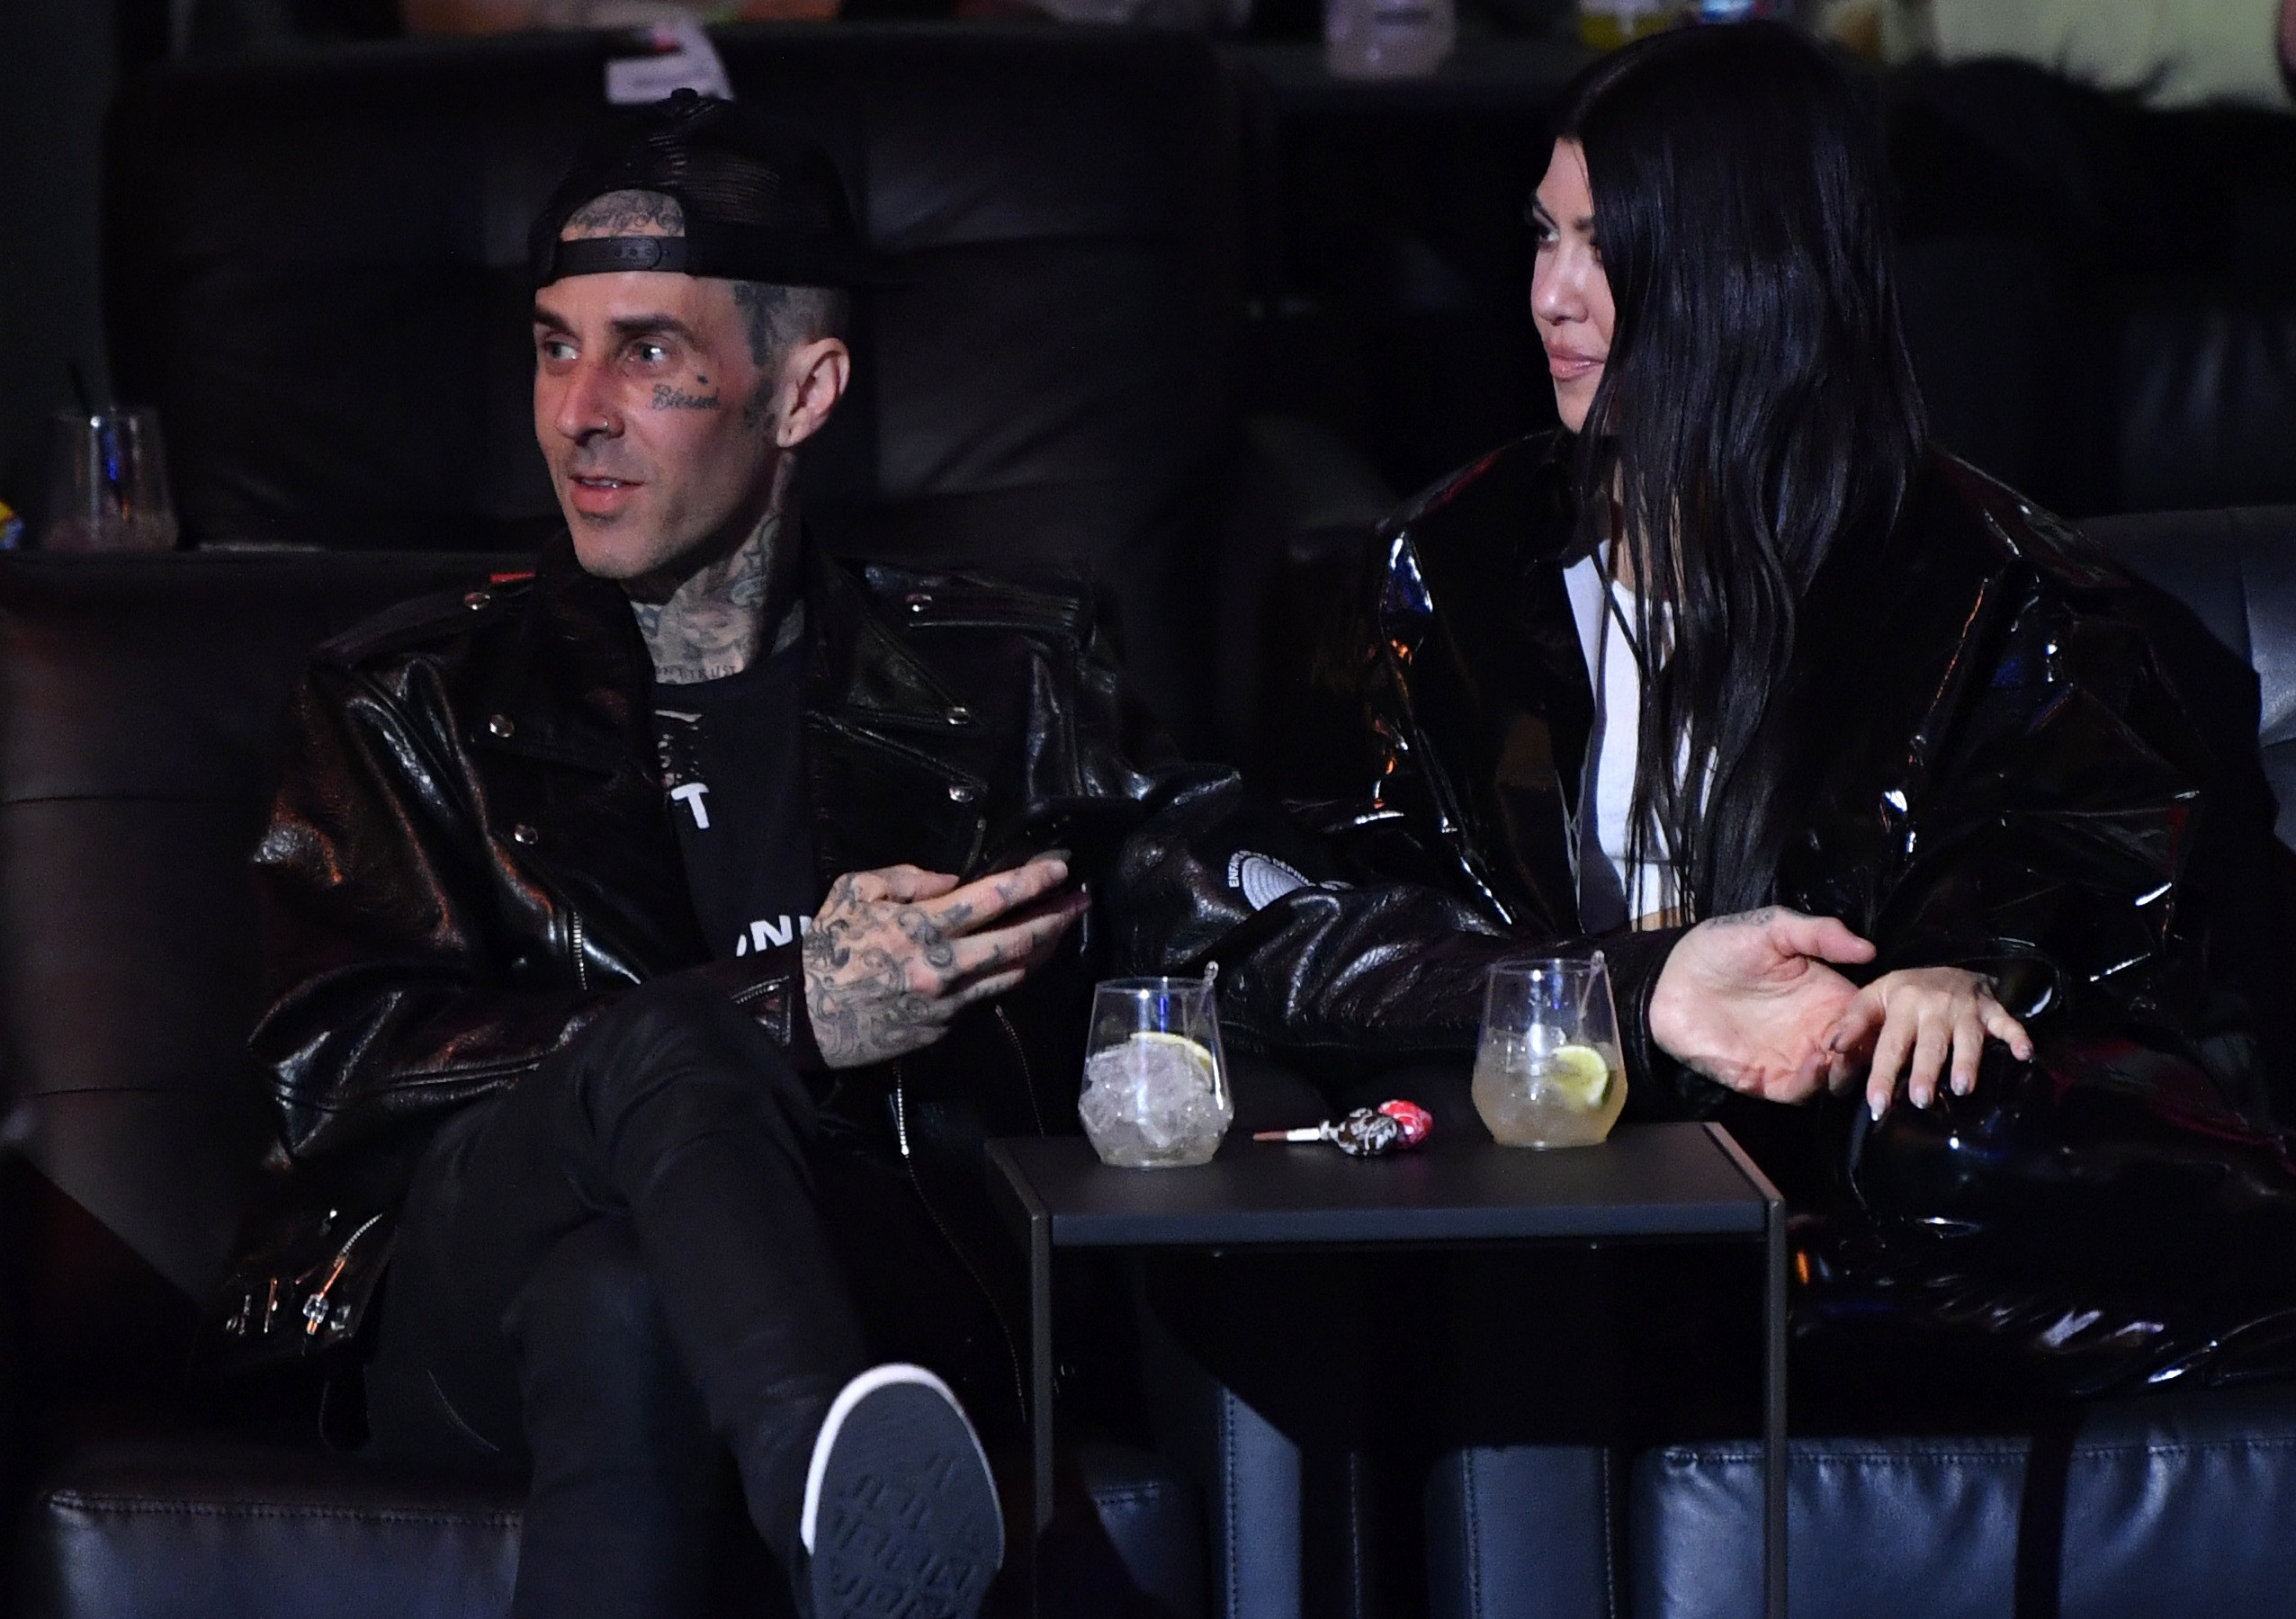 Travis Barker and Kourtney Kardashian are seen in attendance during the UFC 260 event at UFC APEX on March 27, 2021 in Las Vegas, Nevada